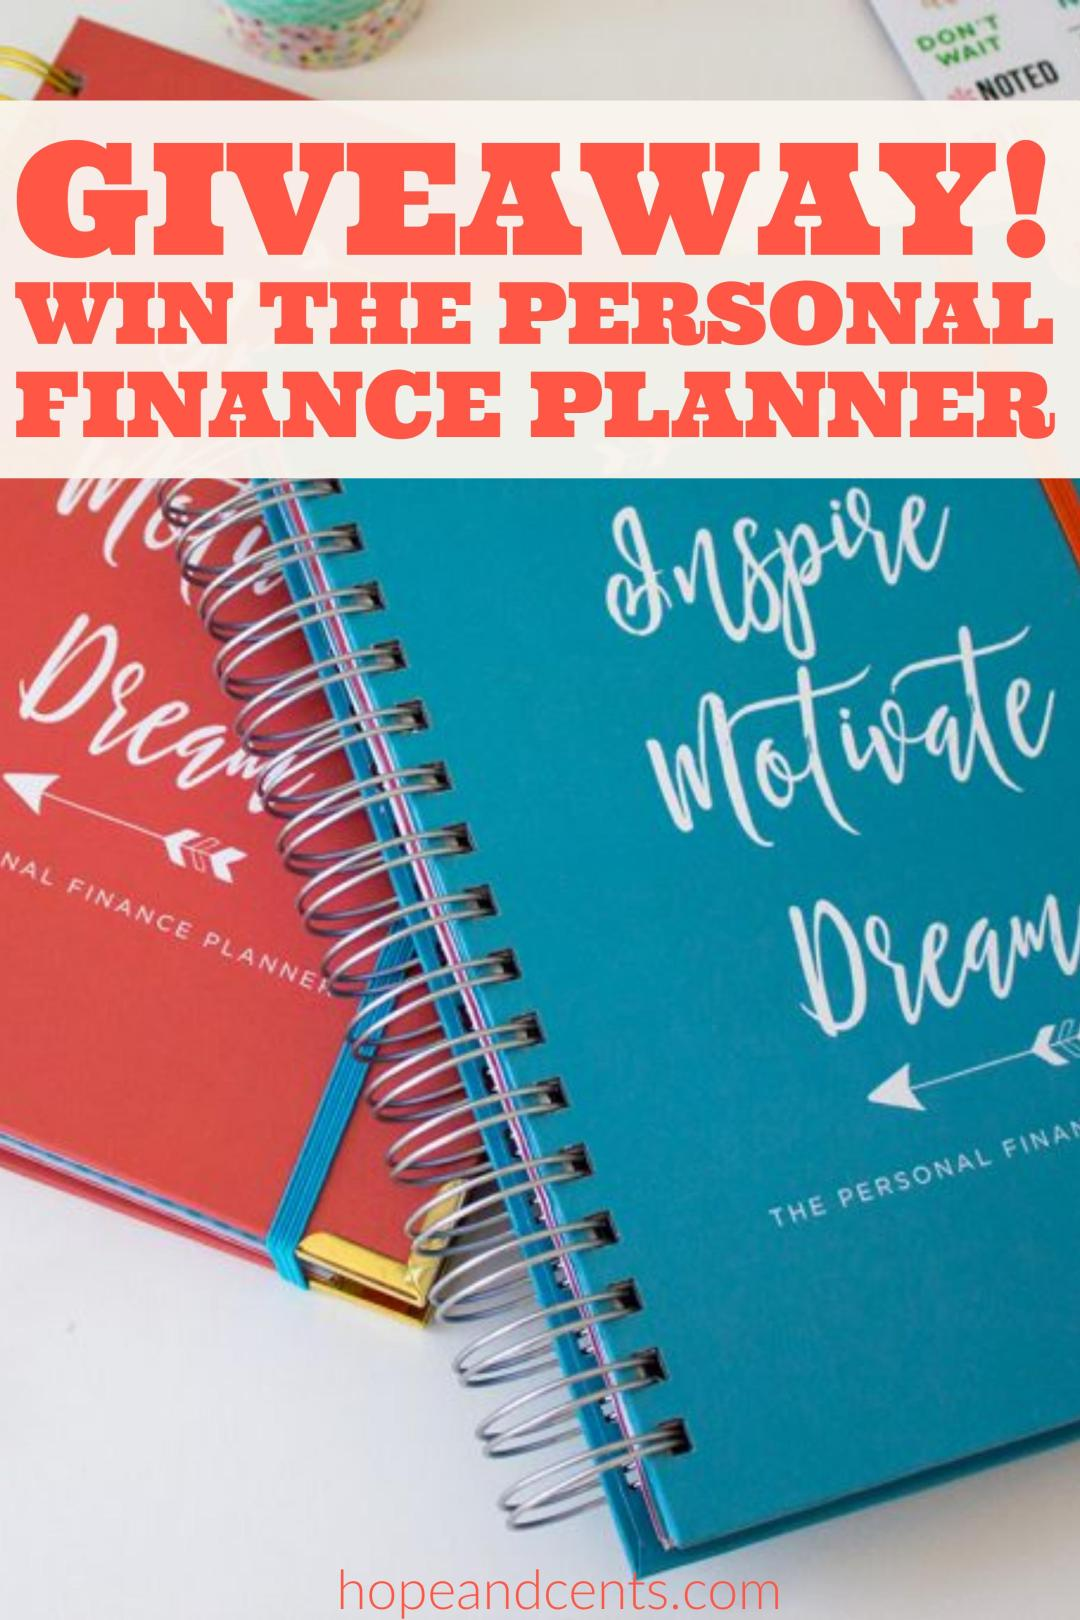 Are you looking for the perfect planner? Organize your schedule, budget, meal planning, and grocery shopping in one place. Enter to win thru 12/20/16.